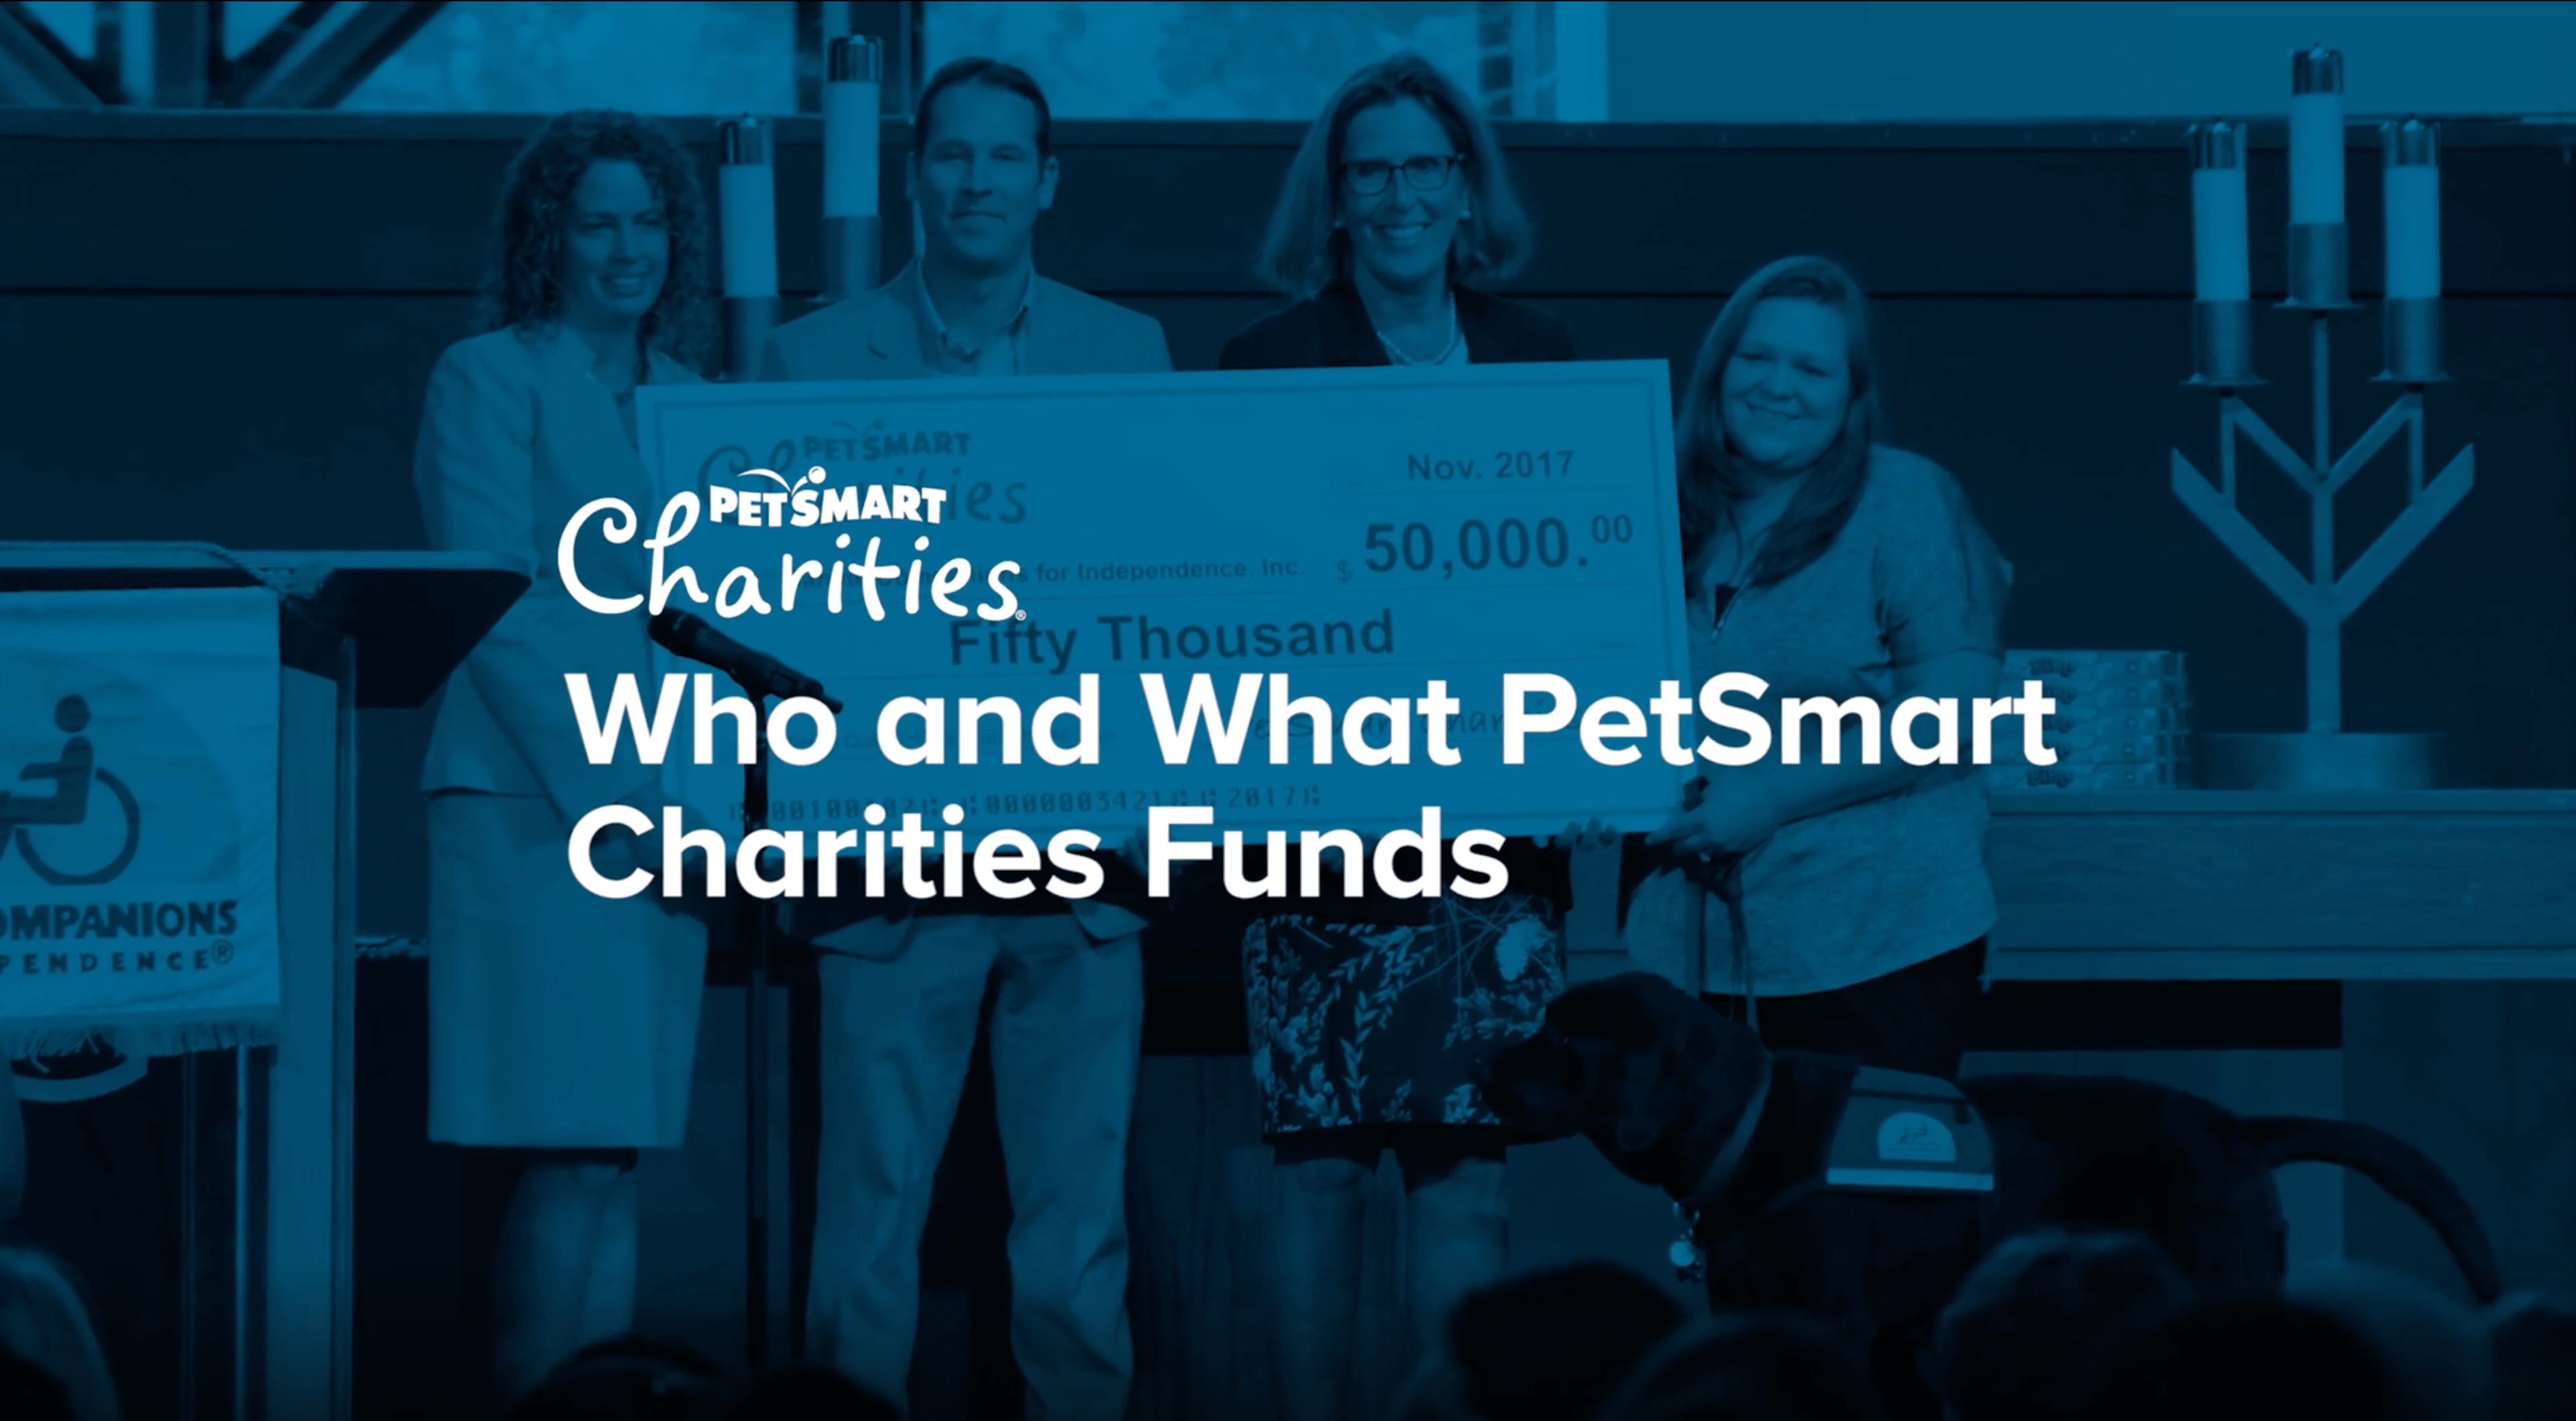 Who and What PetSmart Charities Funds Video